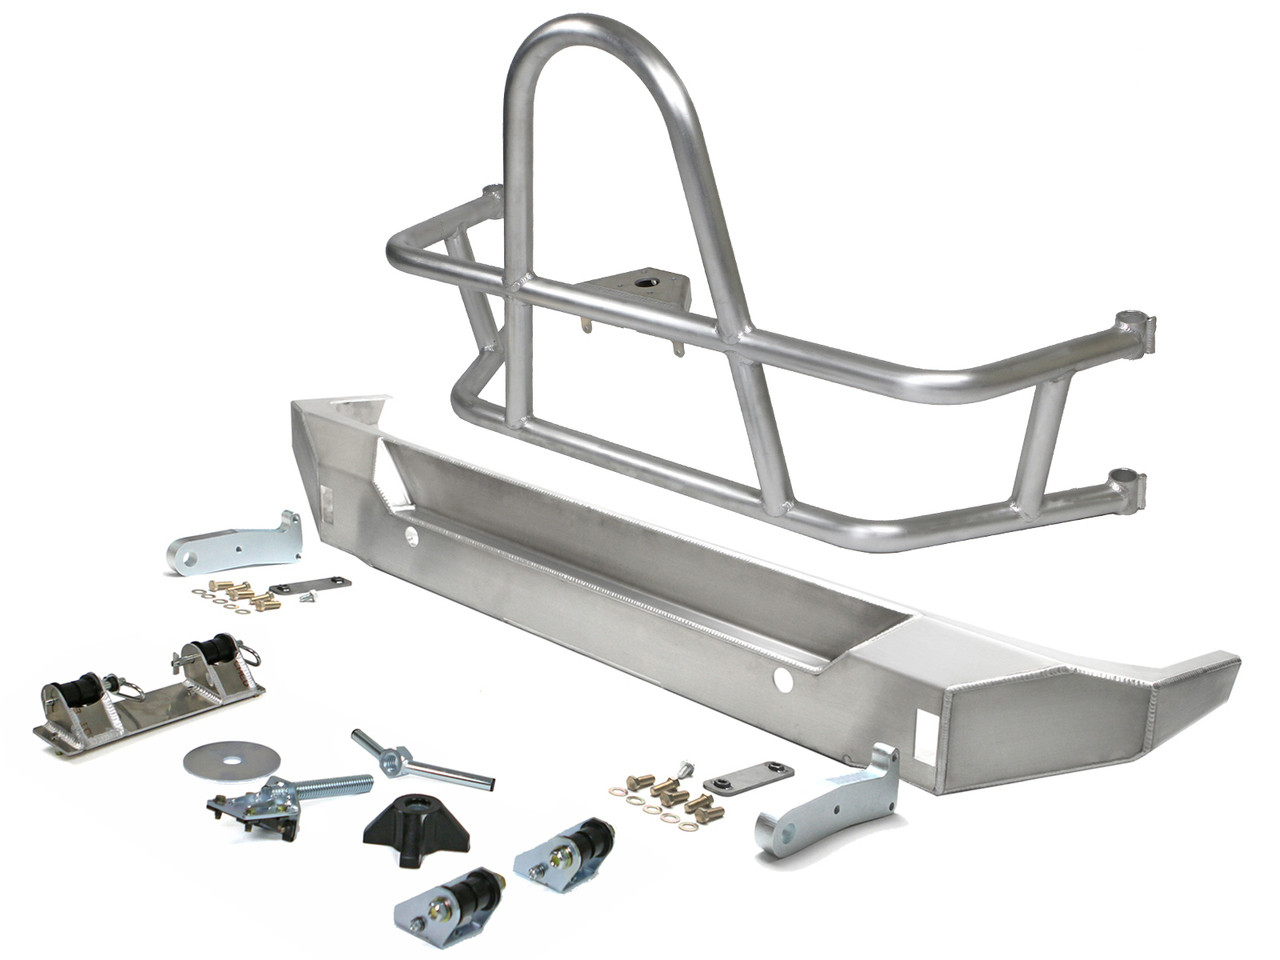 Genright Off Road Swing Out Rear Tire Carrier & Bumper Package For 2007-18 Jeep Wrangler JK 2 Door & Unlimited 4 Door Models RTC-RBB-PKG-A